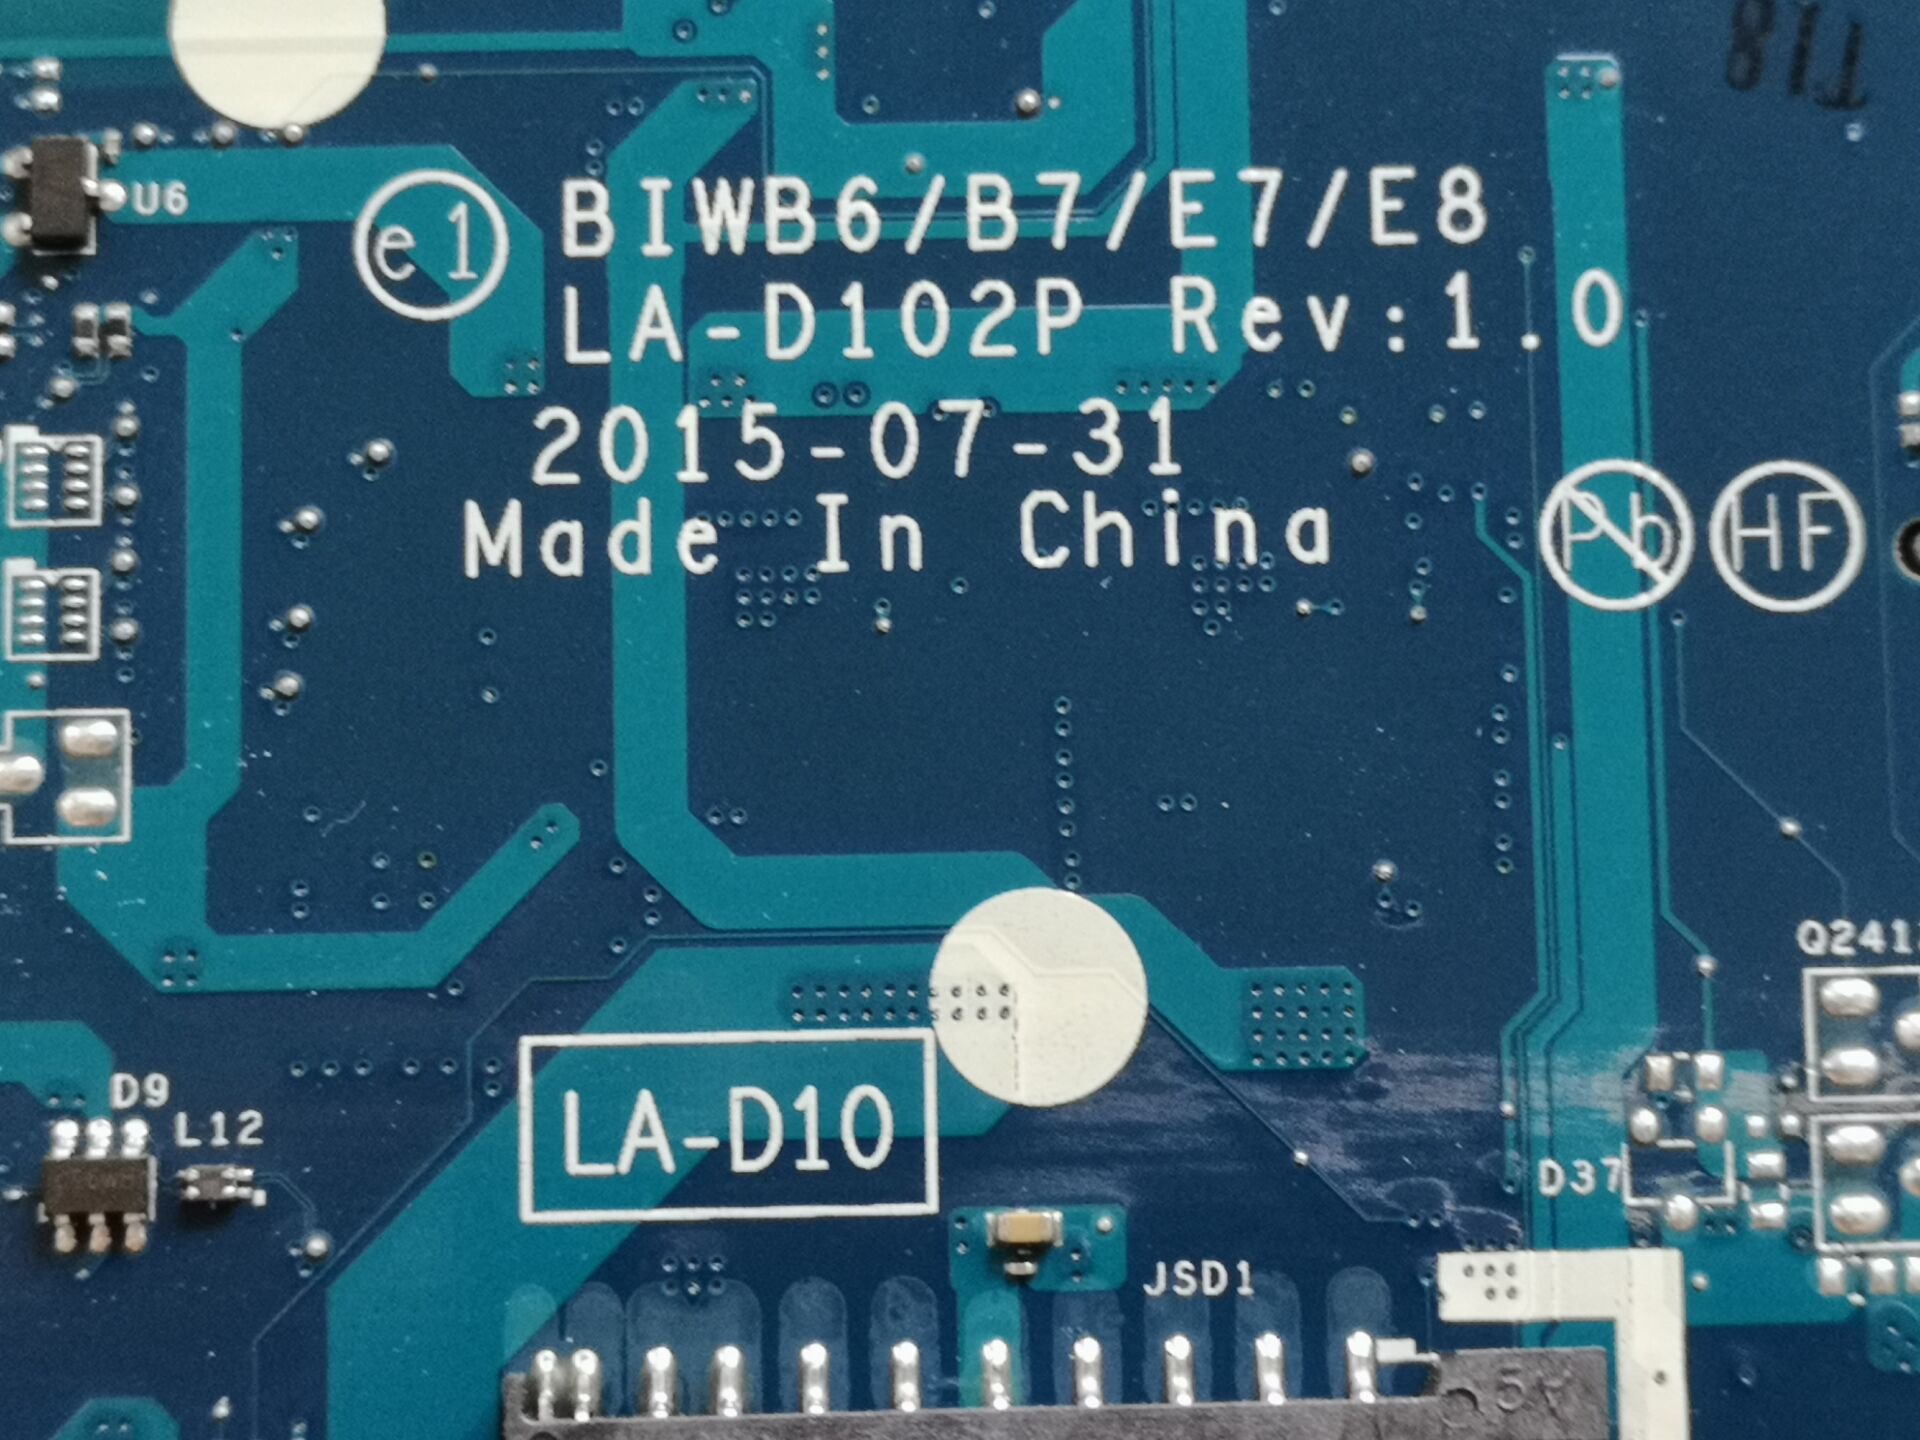 Tested For Lenovo B51 80 B51-80 BIWB6 B7 E7 E8 LA-D102P Notebook Motherboard 4405U